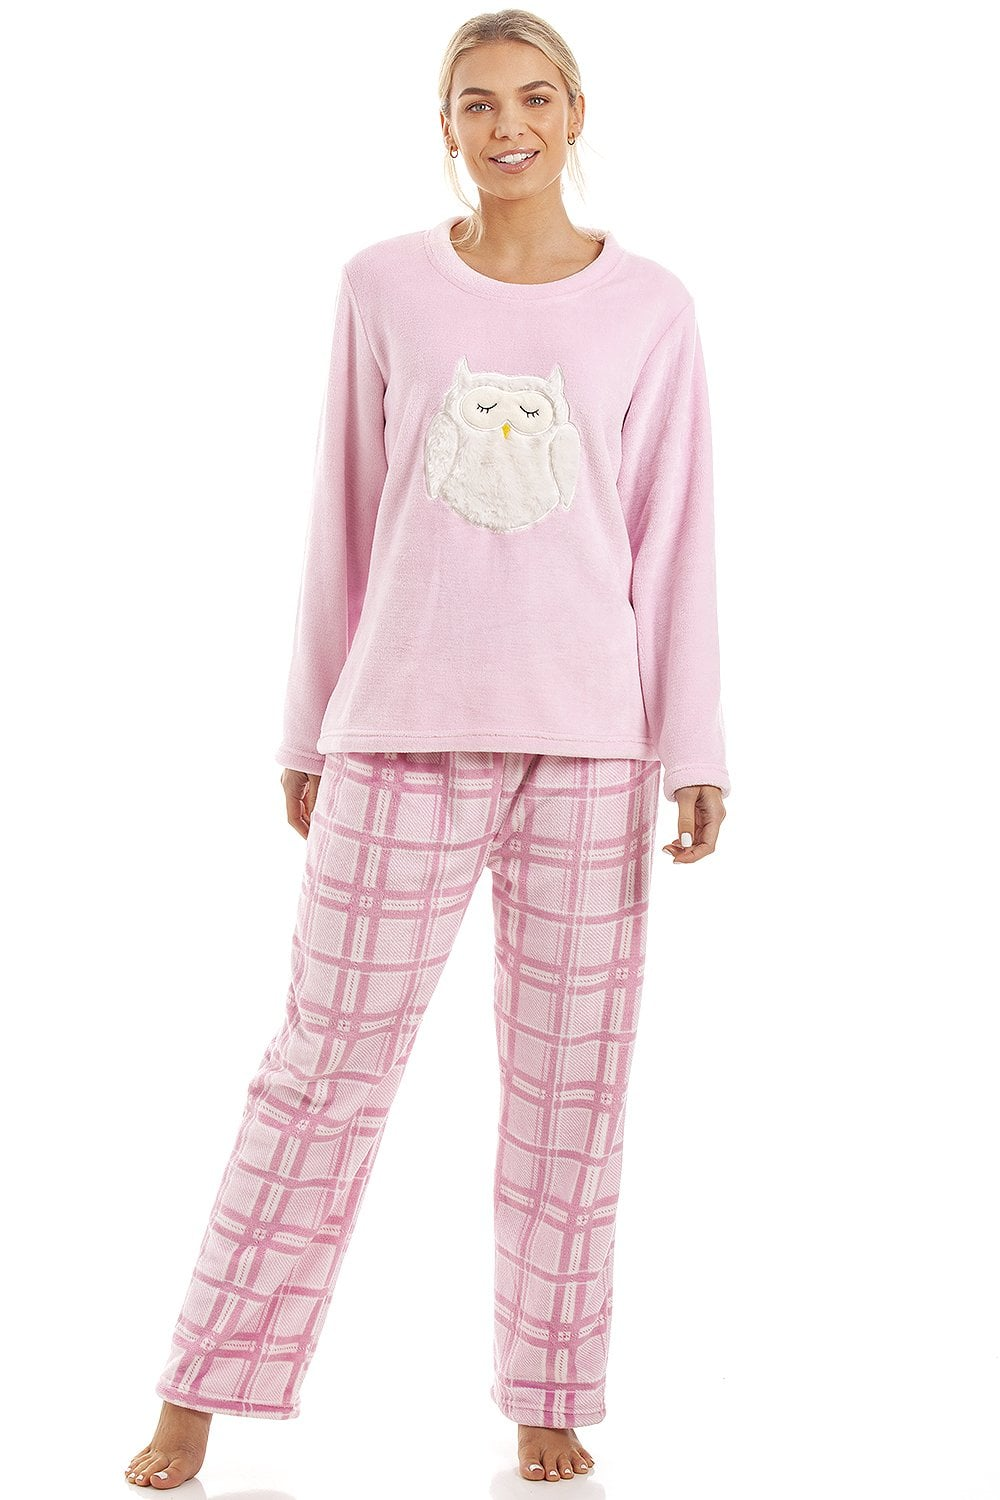 2019 factory price enjoy free shipping new release Pink Checkered Supersoft Fleece Owl Character Pyjama Set